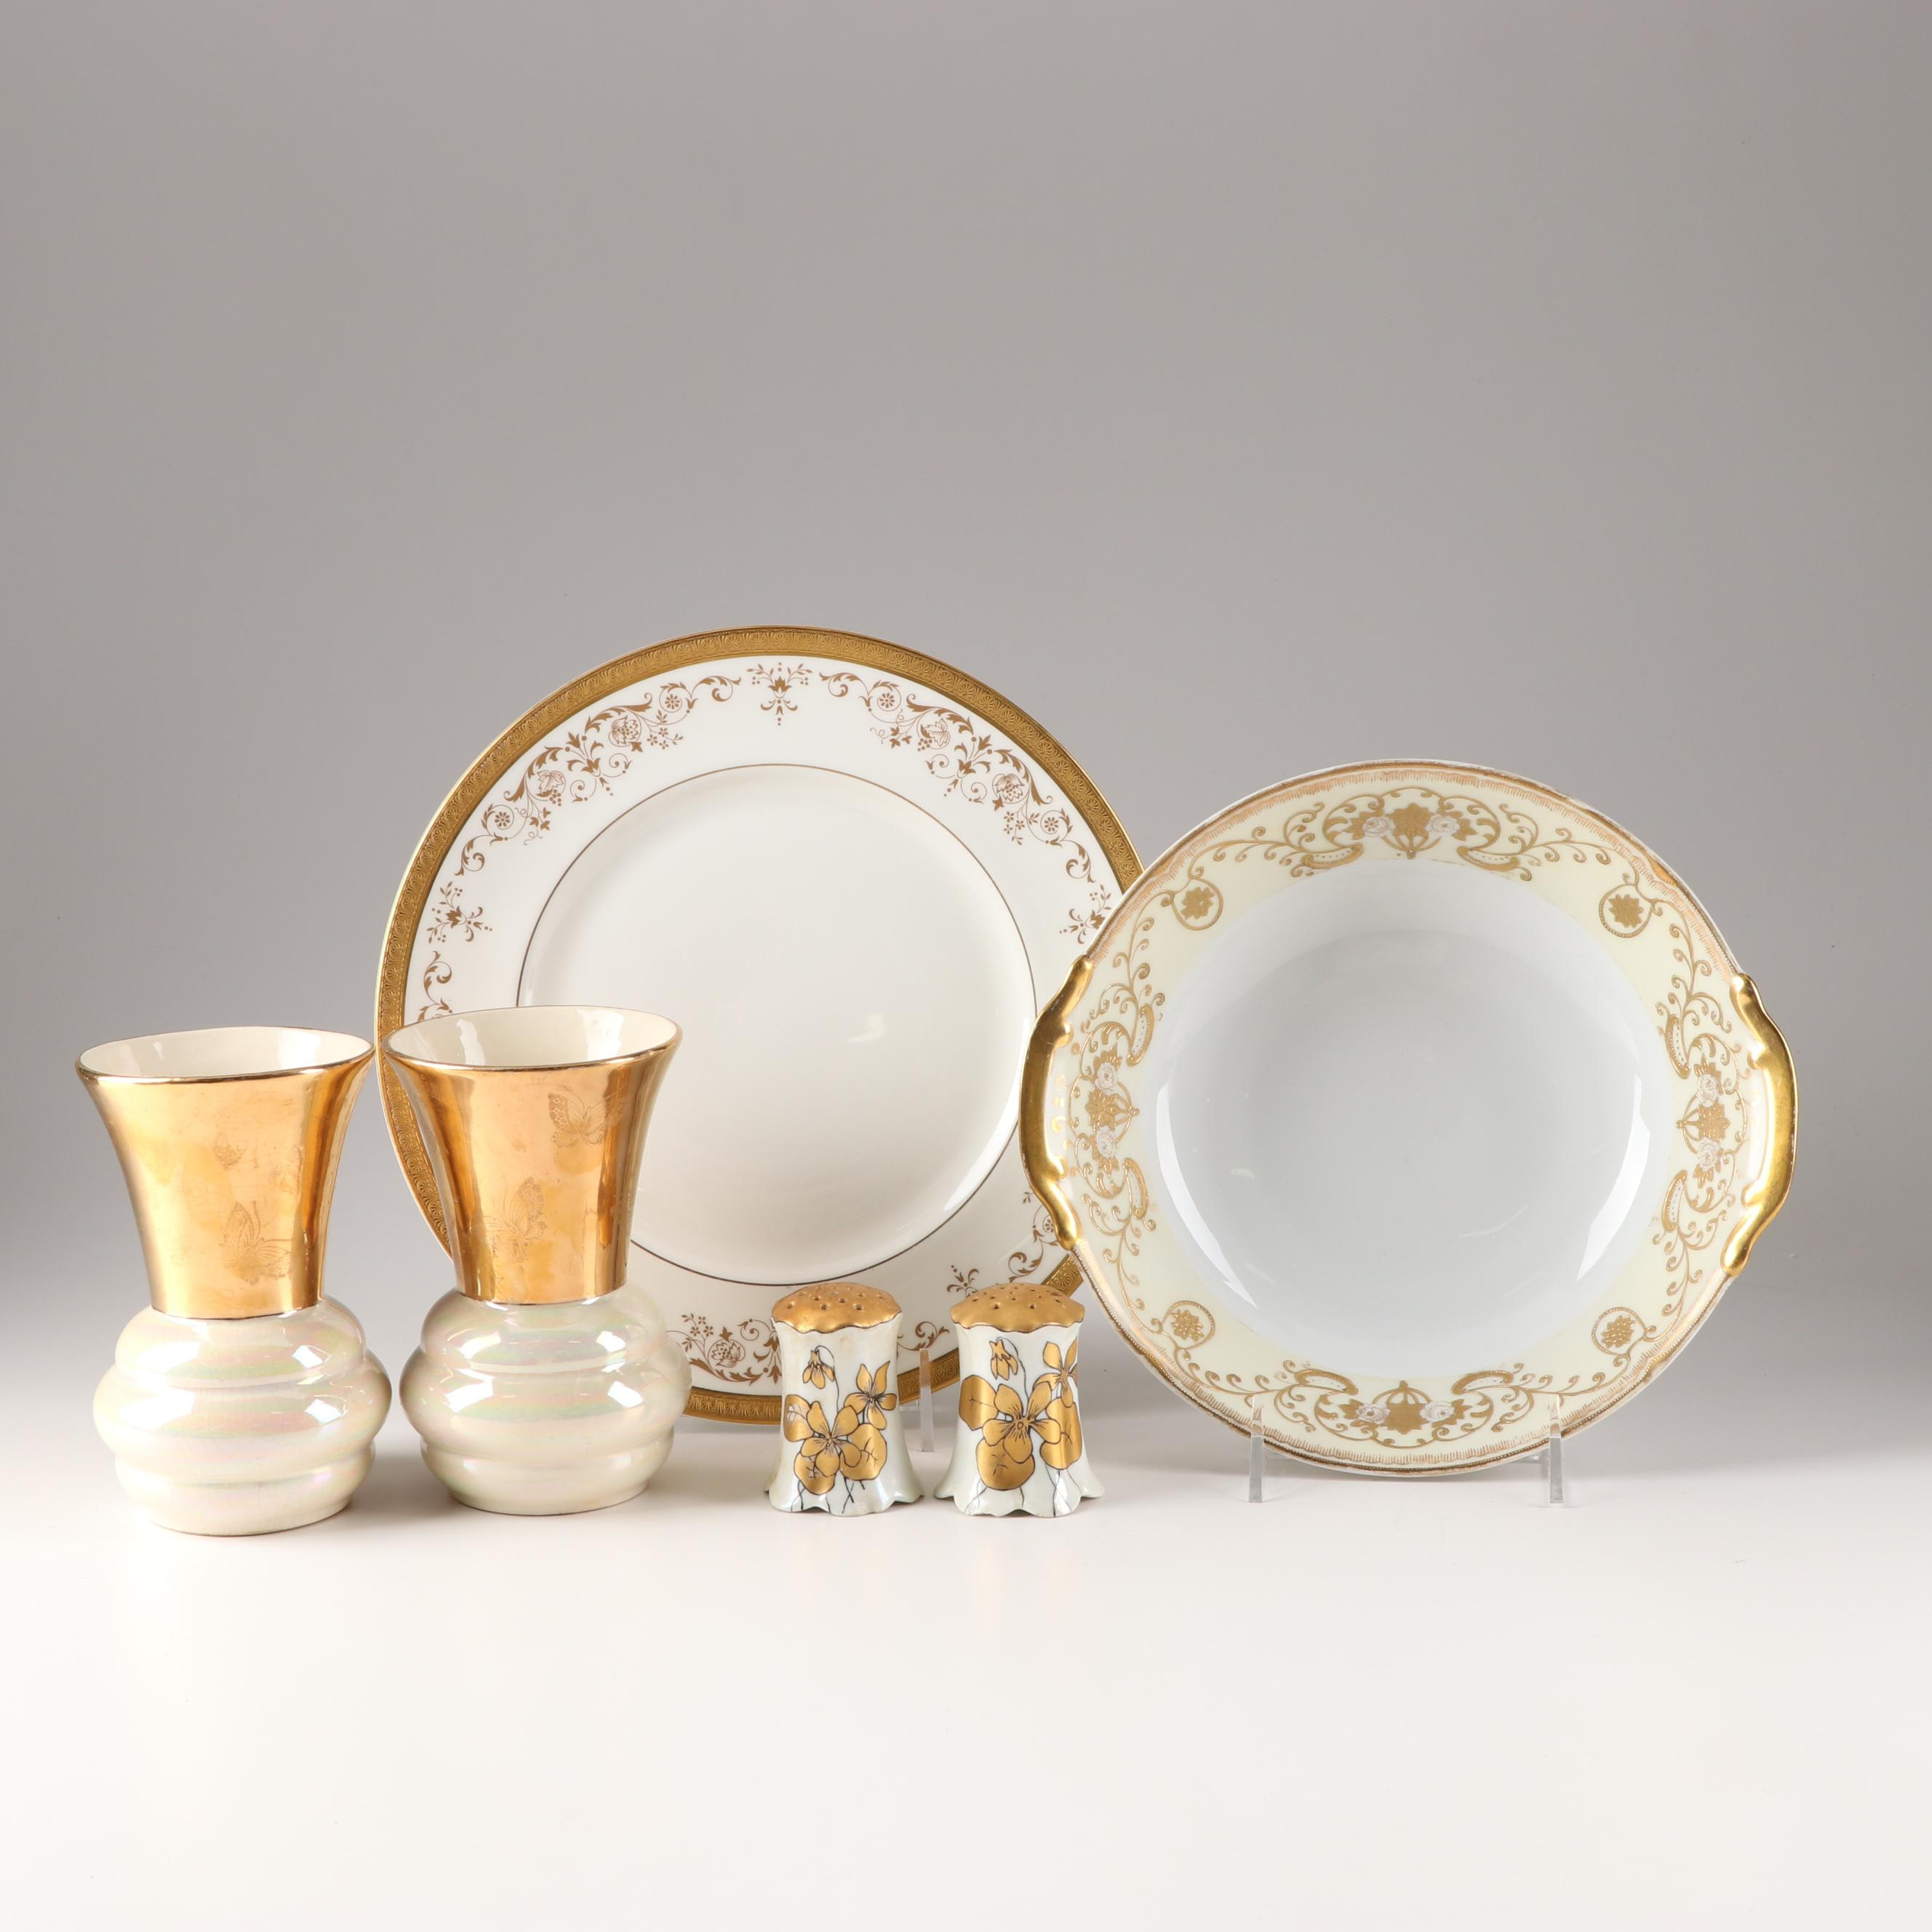 Decorative Tableware Featuring Royal Doulton, Early 20th Century